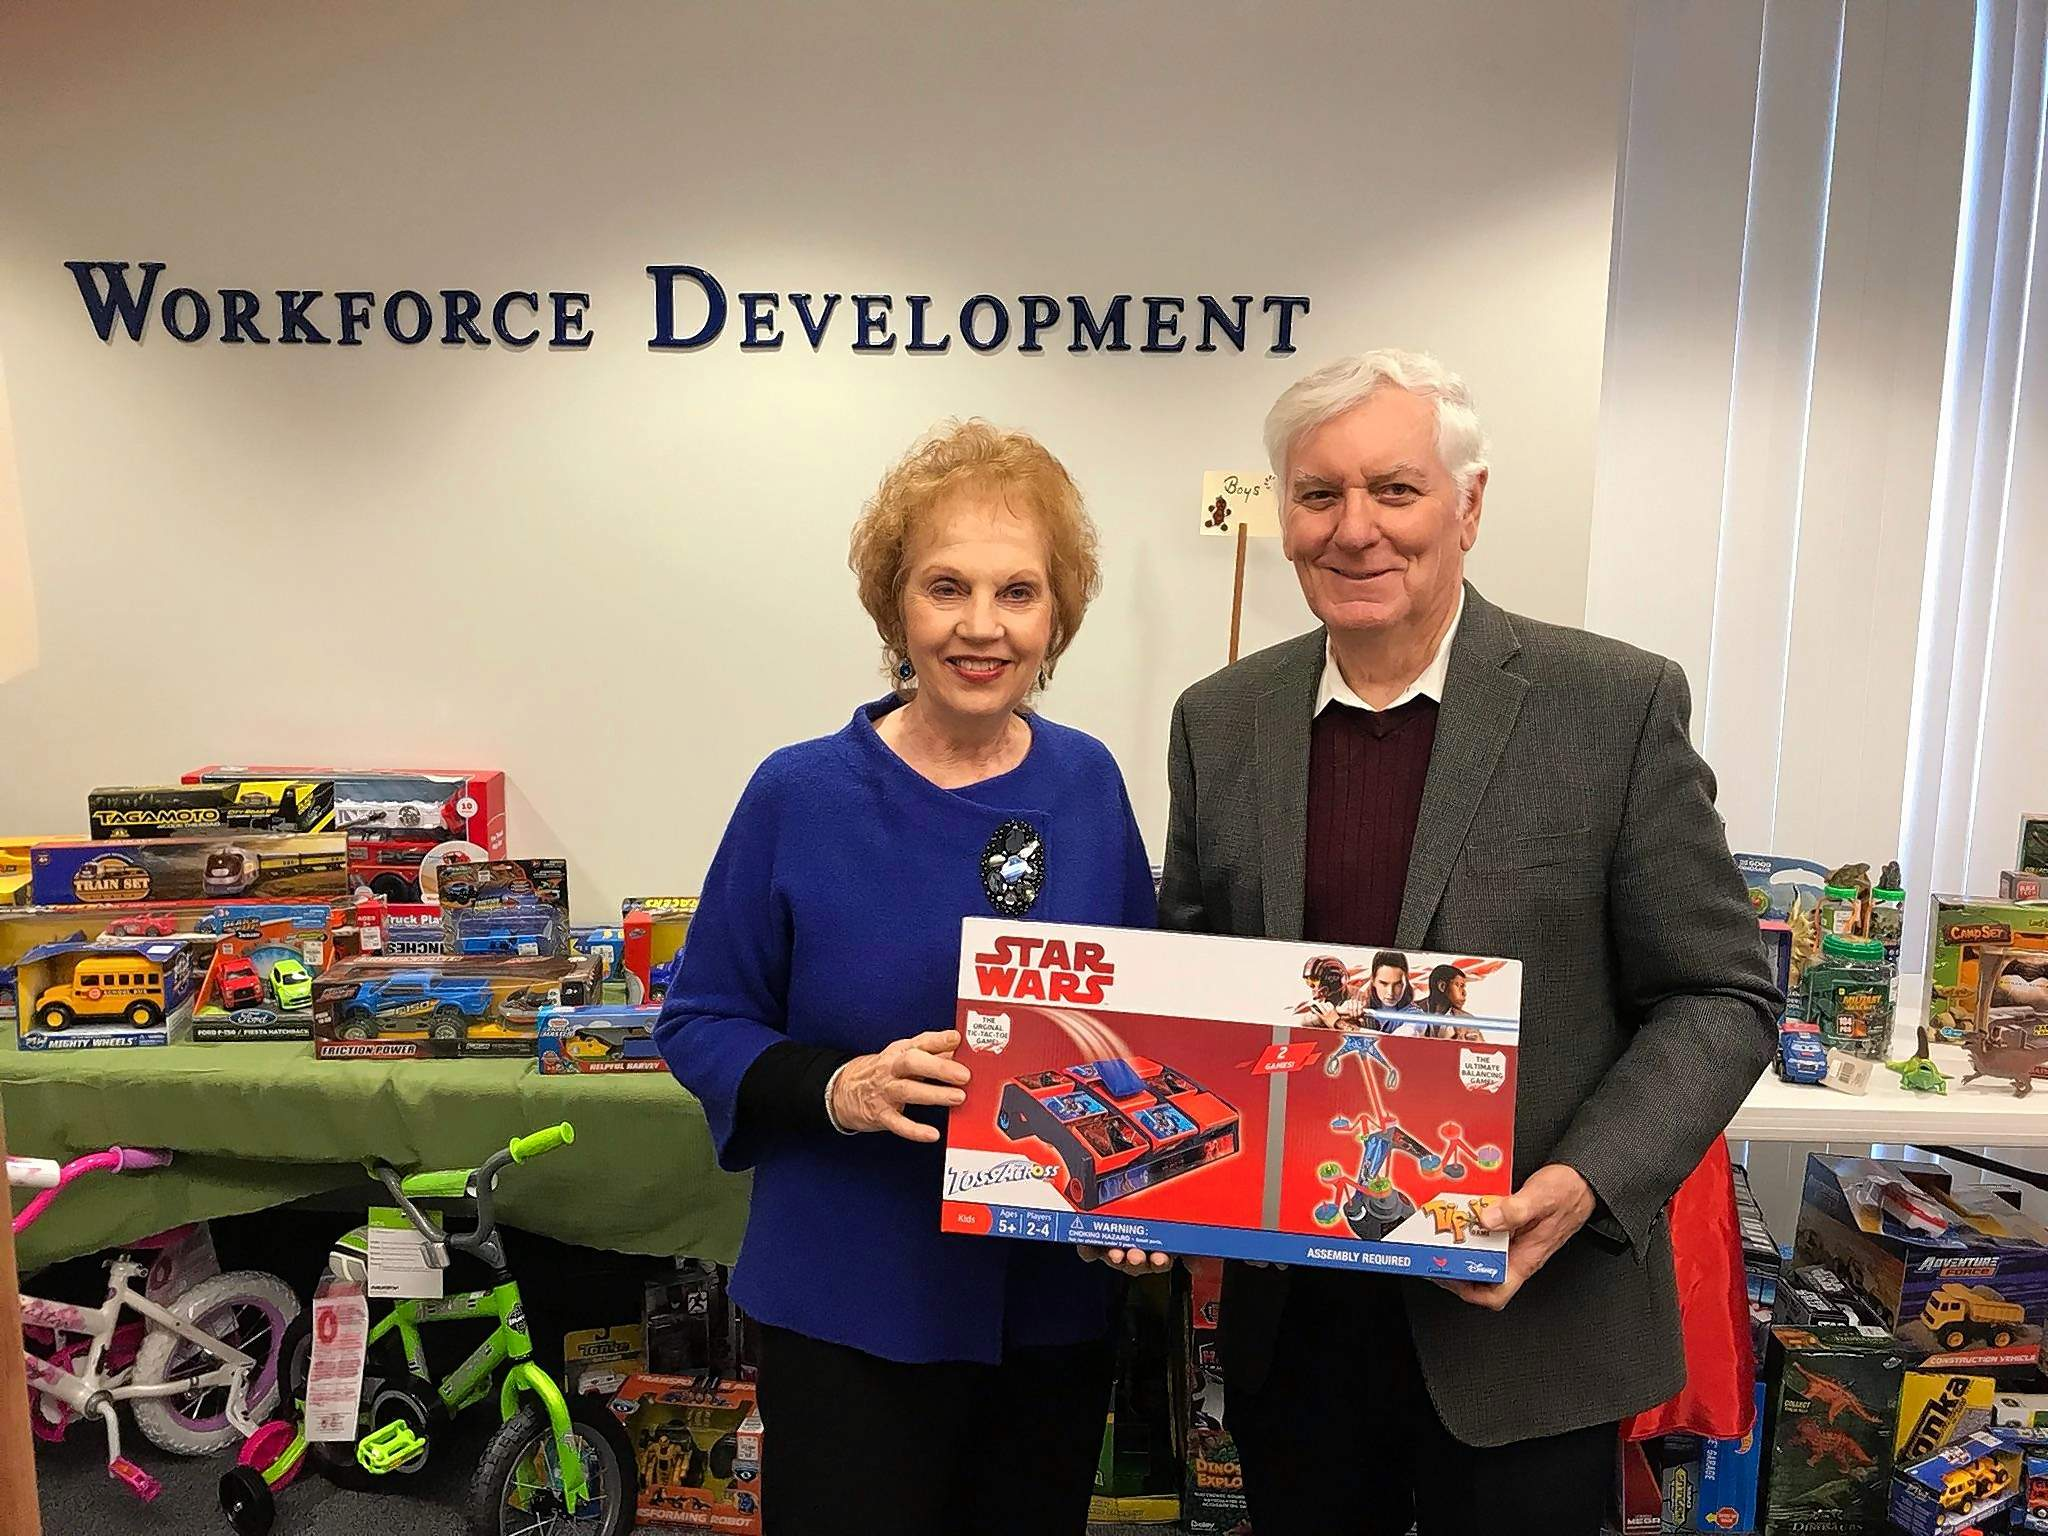 Poshard Foundation co-founders Jo and Glenn Poshard show off a Star Wars game, one of more than 1,200 toys and gifts donated to the Foundation for children this Christmas season.